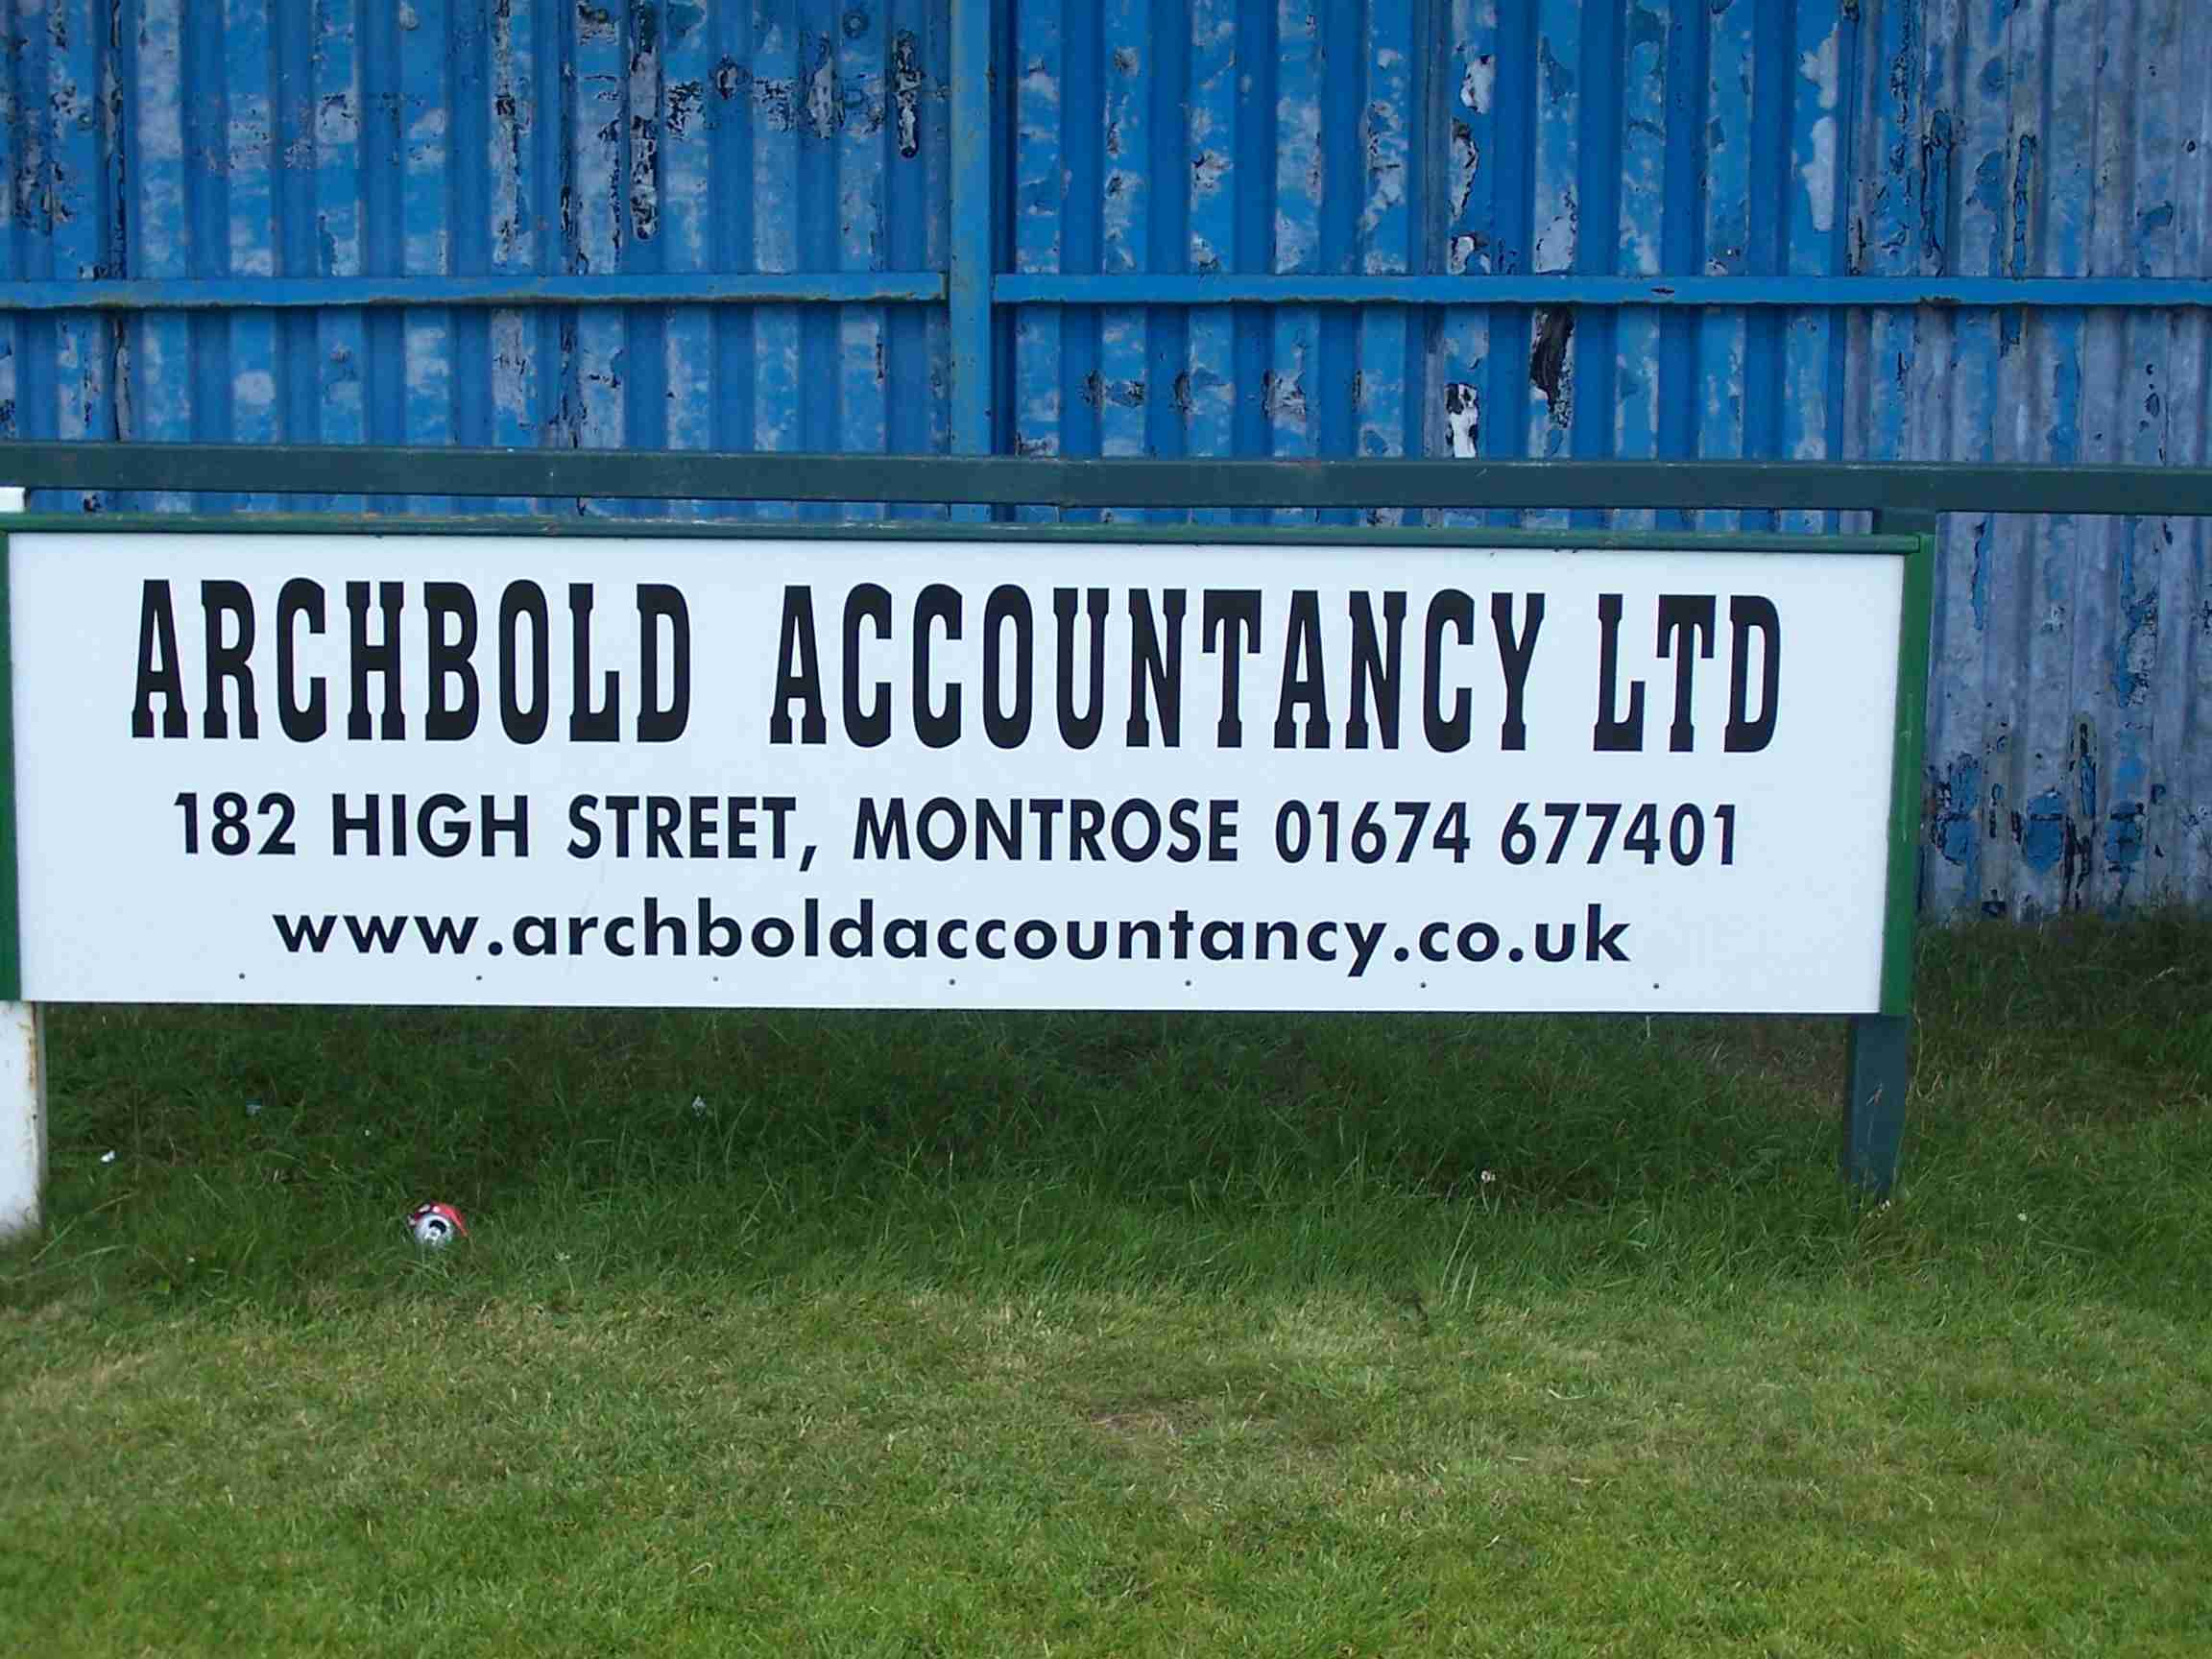 Archbold Accountancy